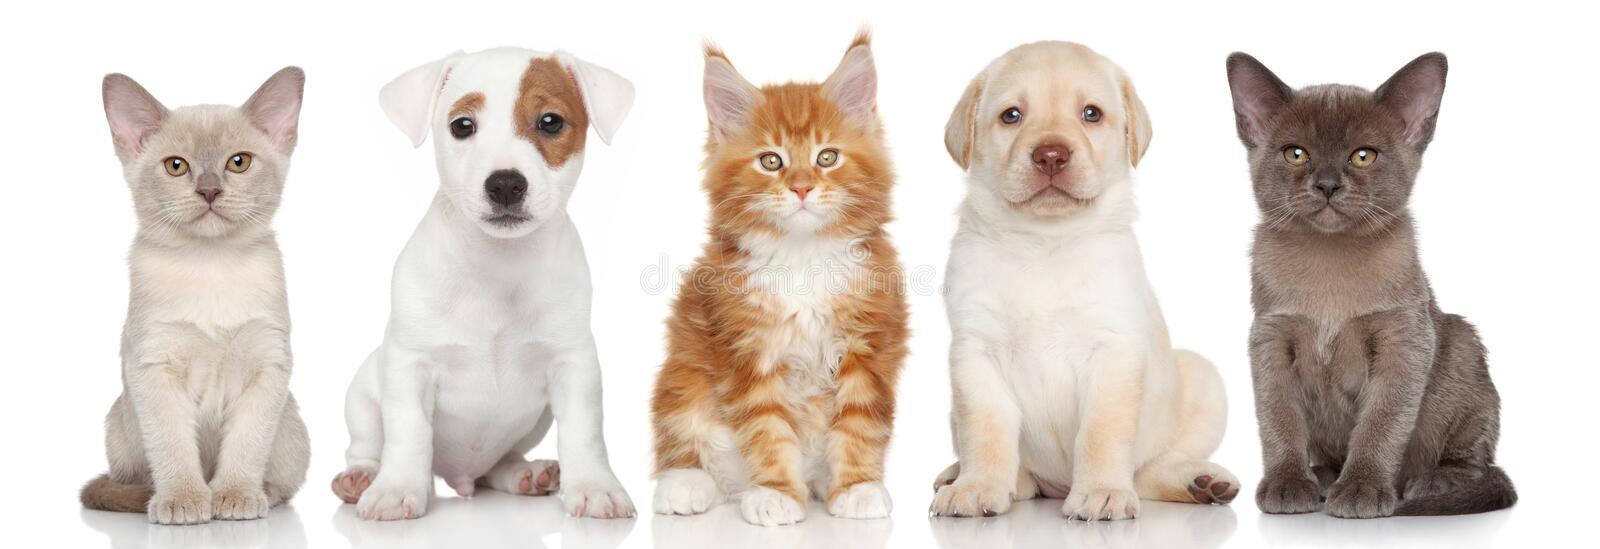 Group of small kitten and puppies royalty free stock images